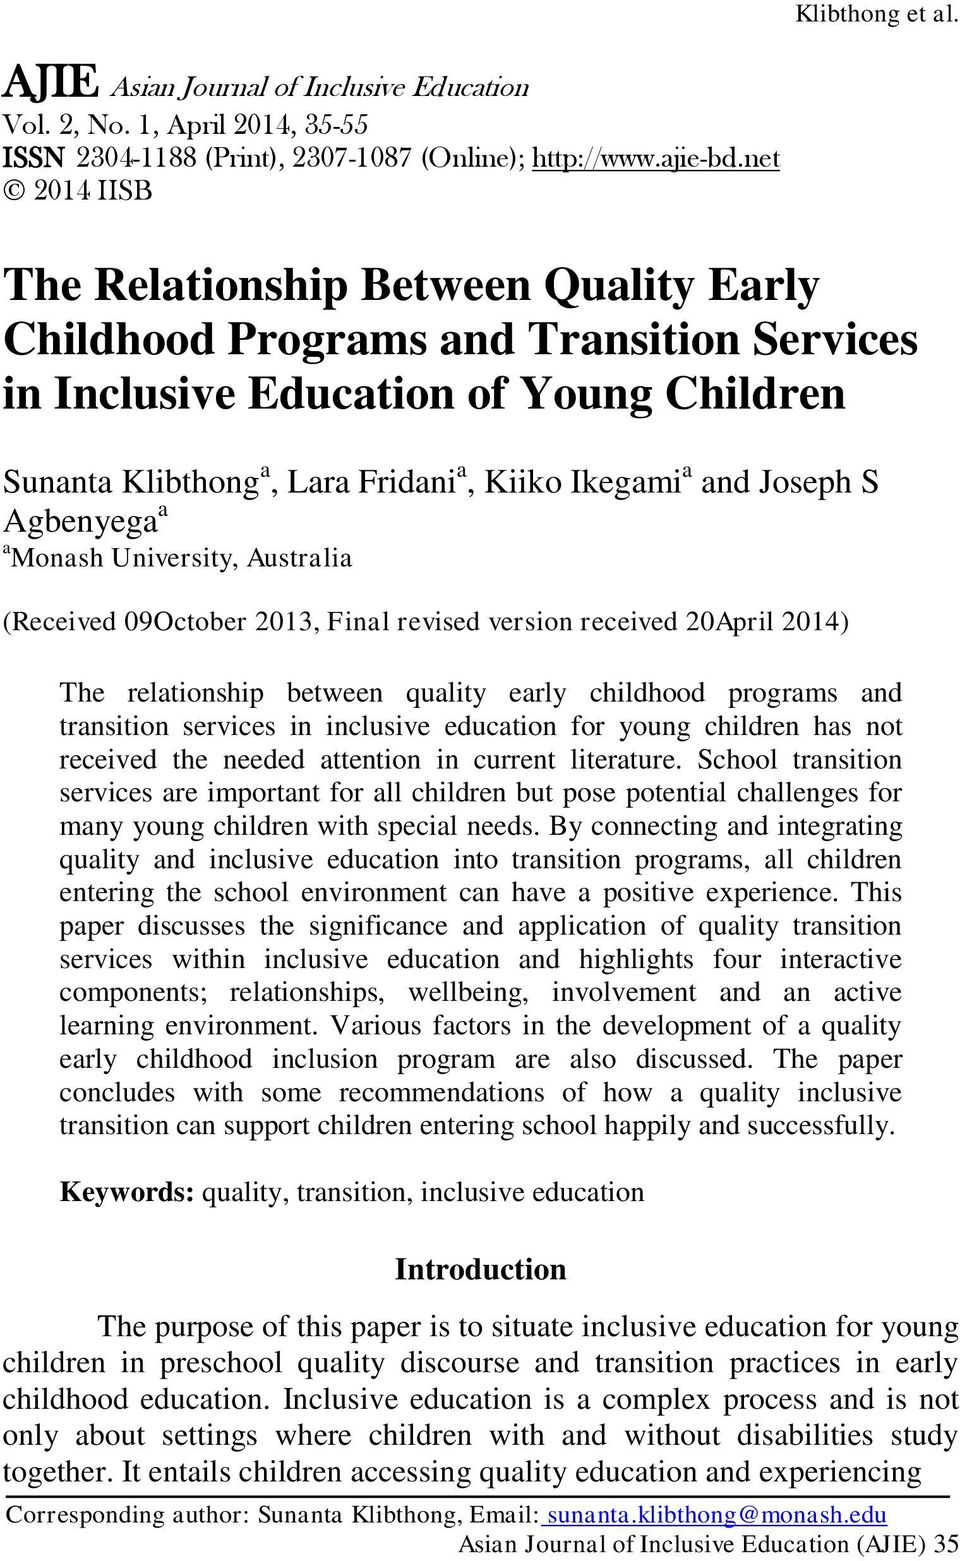 Joseph S Agbenyega a a Monash University, Australia (Received 09October 2013, Final revised version received 20April 2014) The relationship between quality early childhood programs and transition